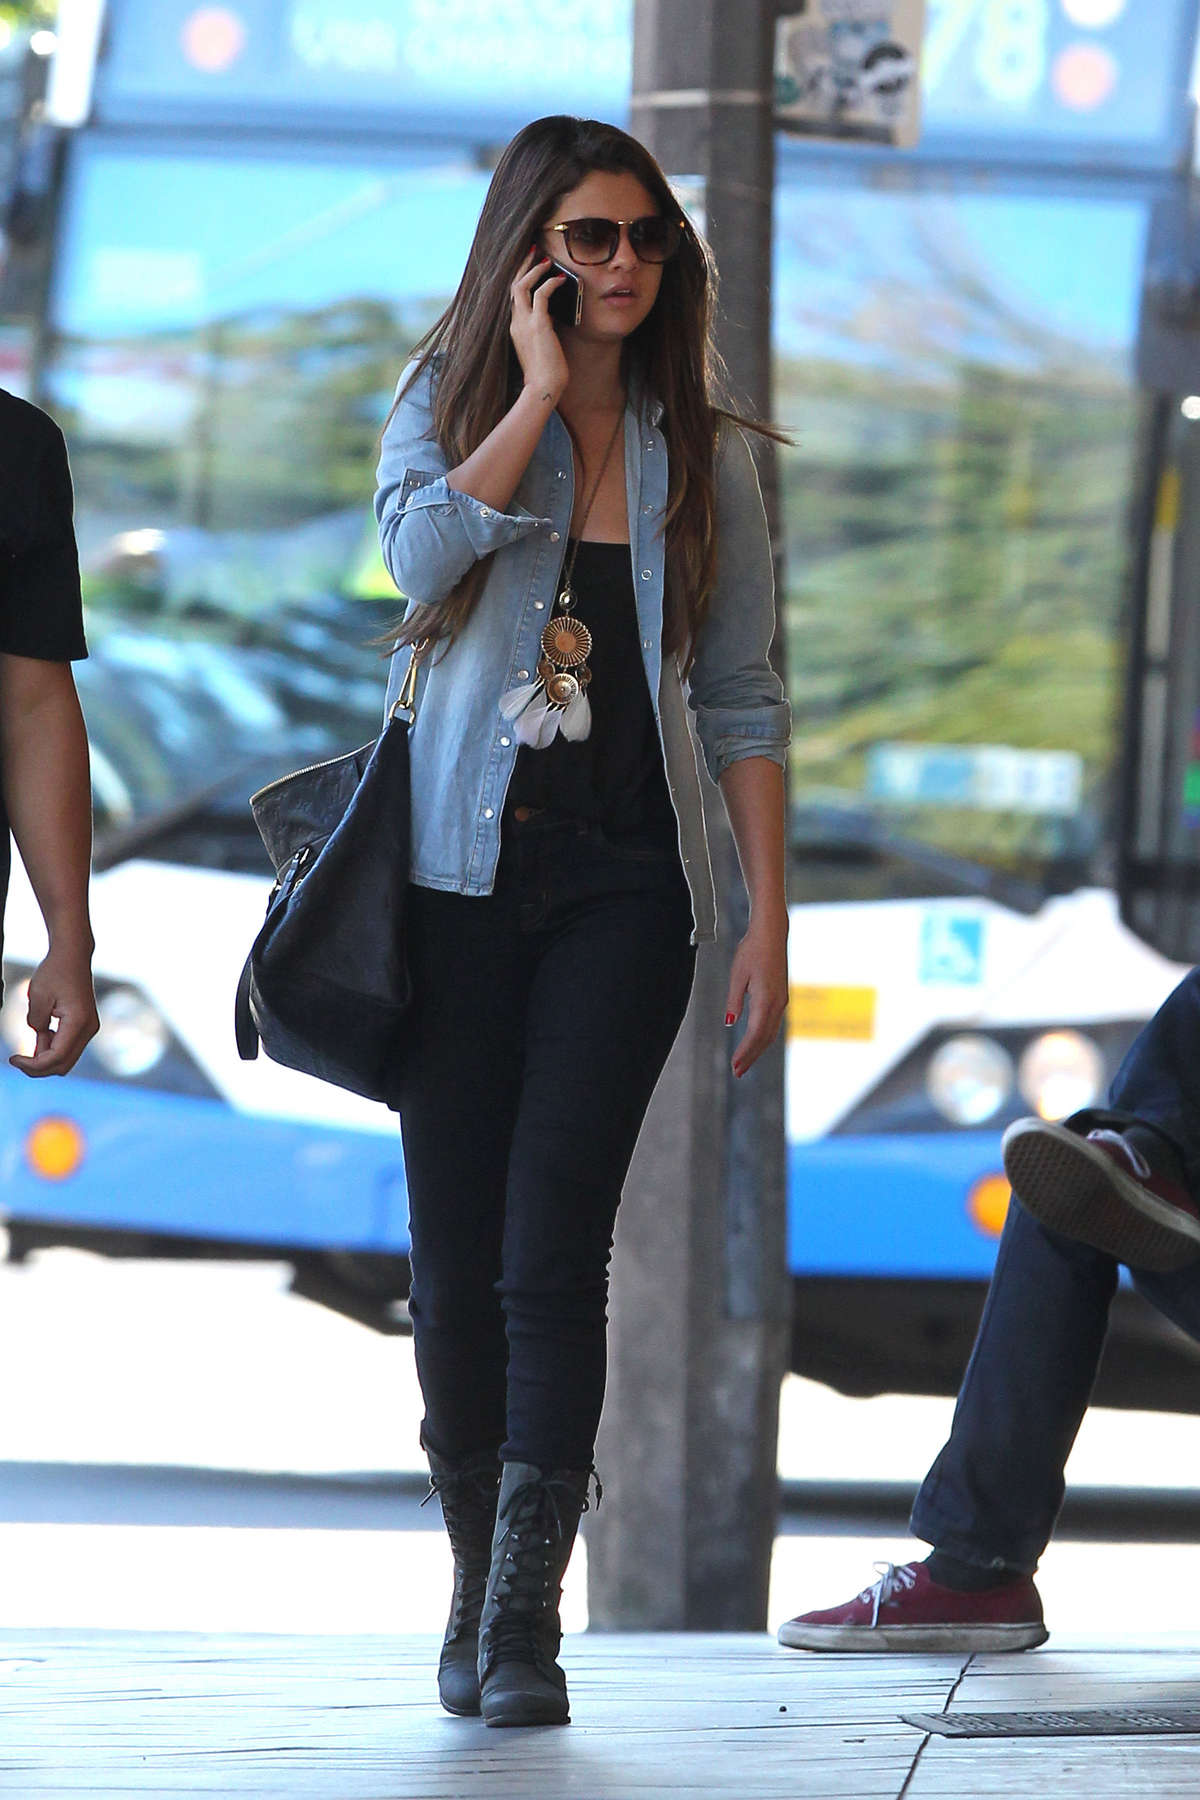 Who is selena gomez dating in Sydney